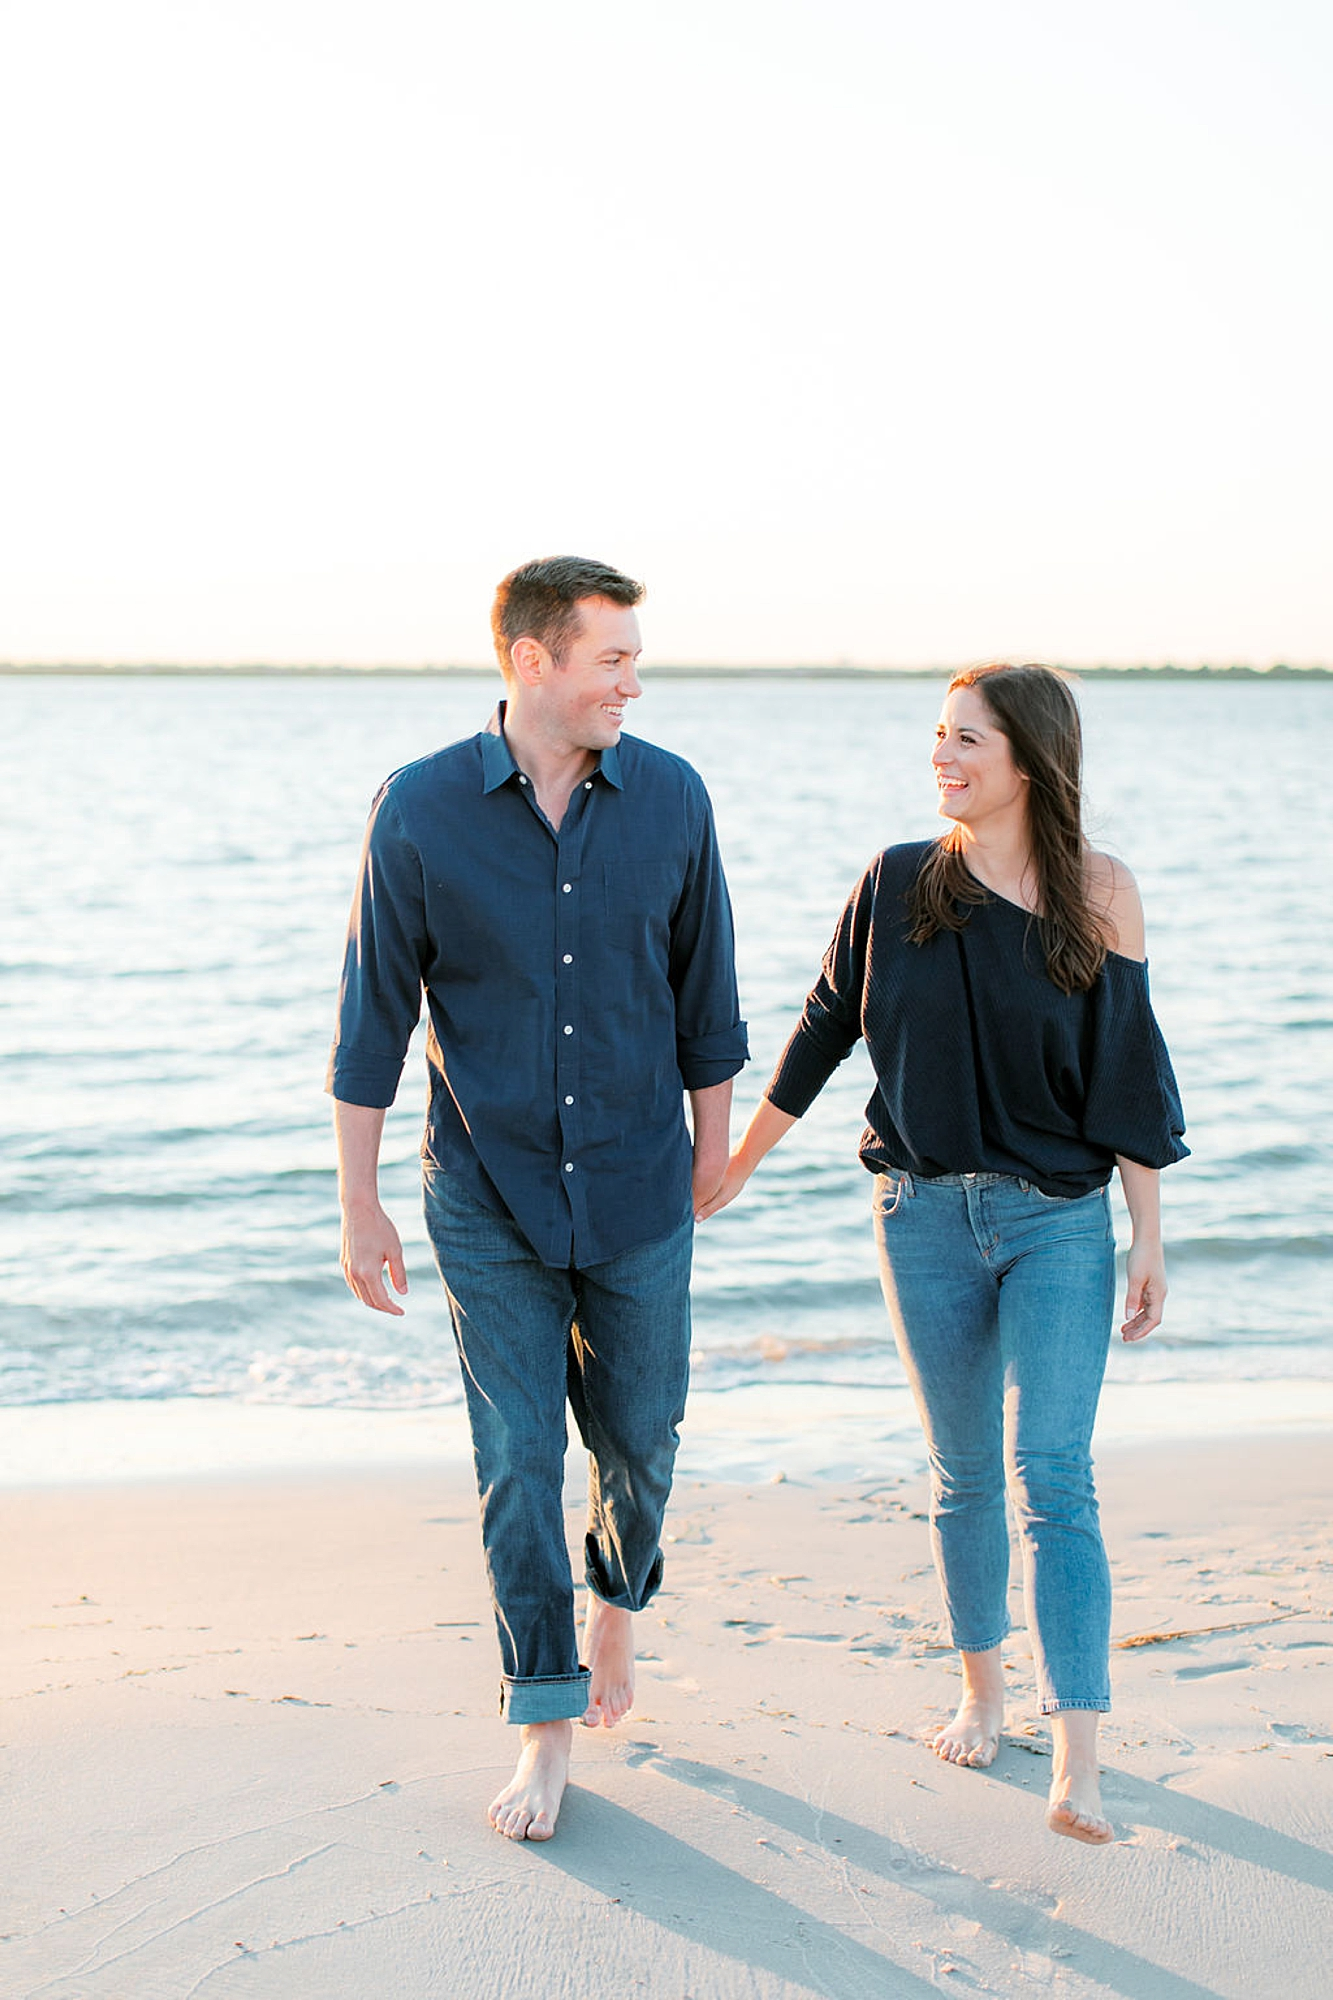 Film Engagement Session Photography in Ocean City NJ by Magdalena Studios 0052